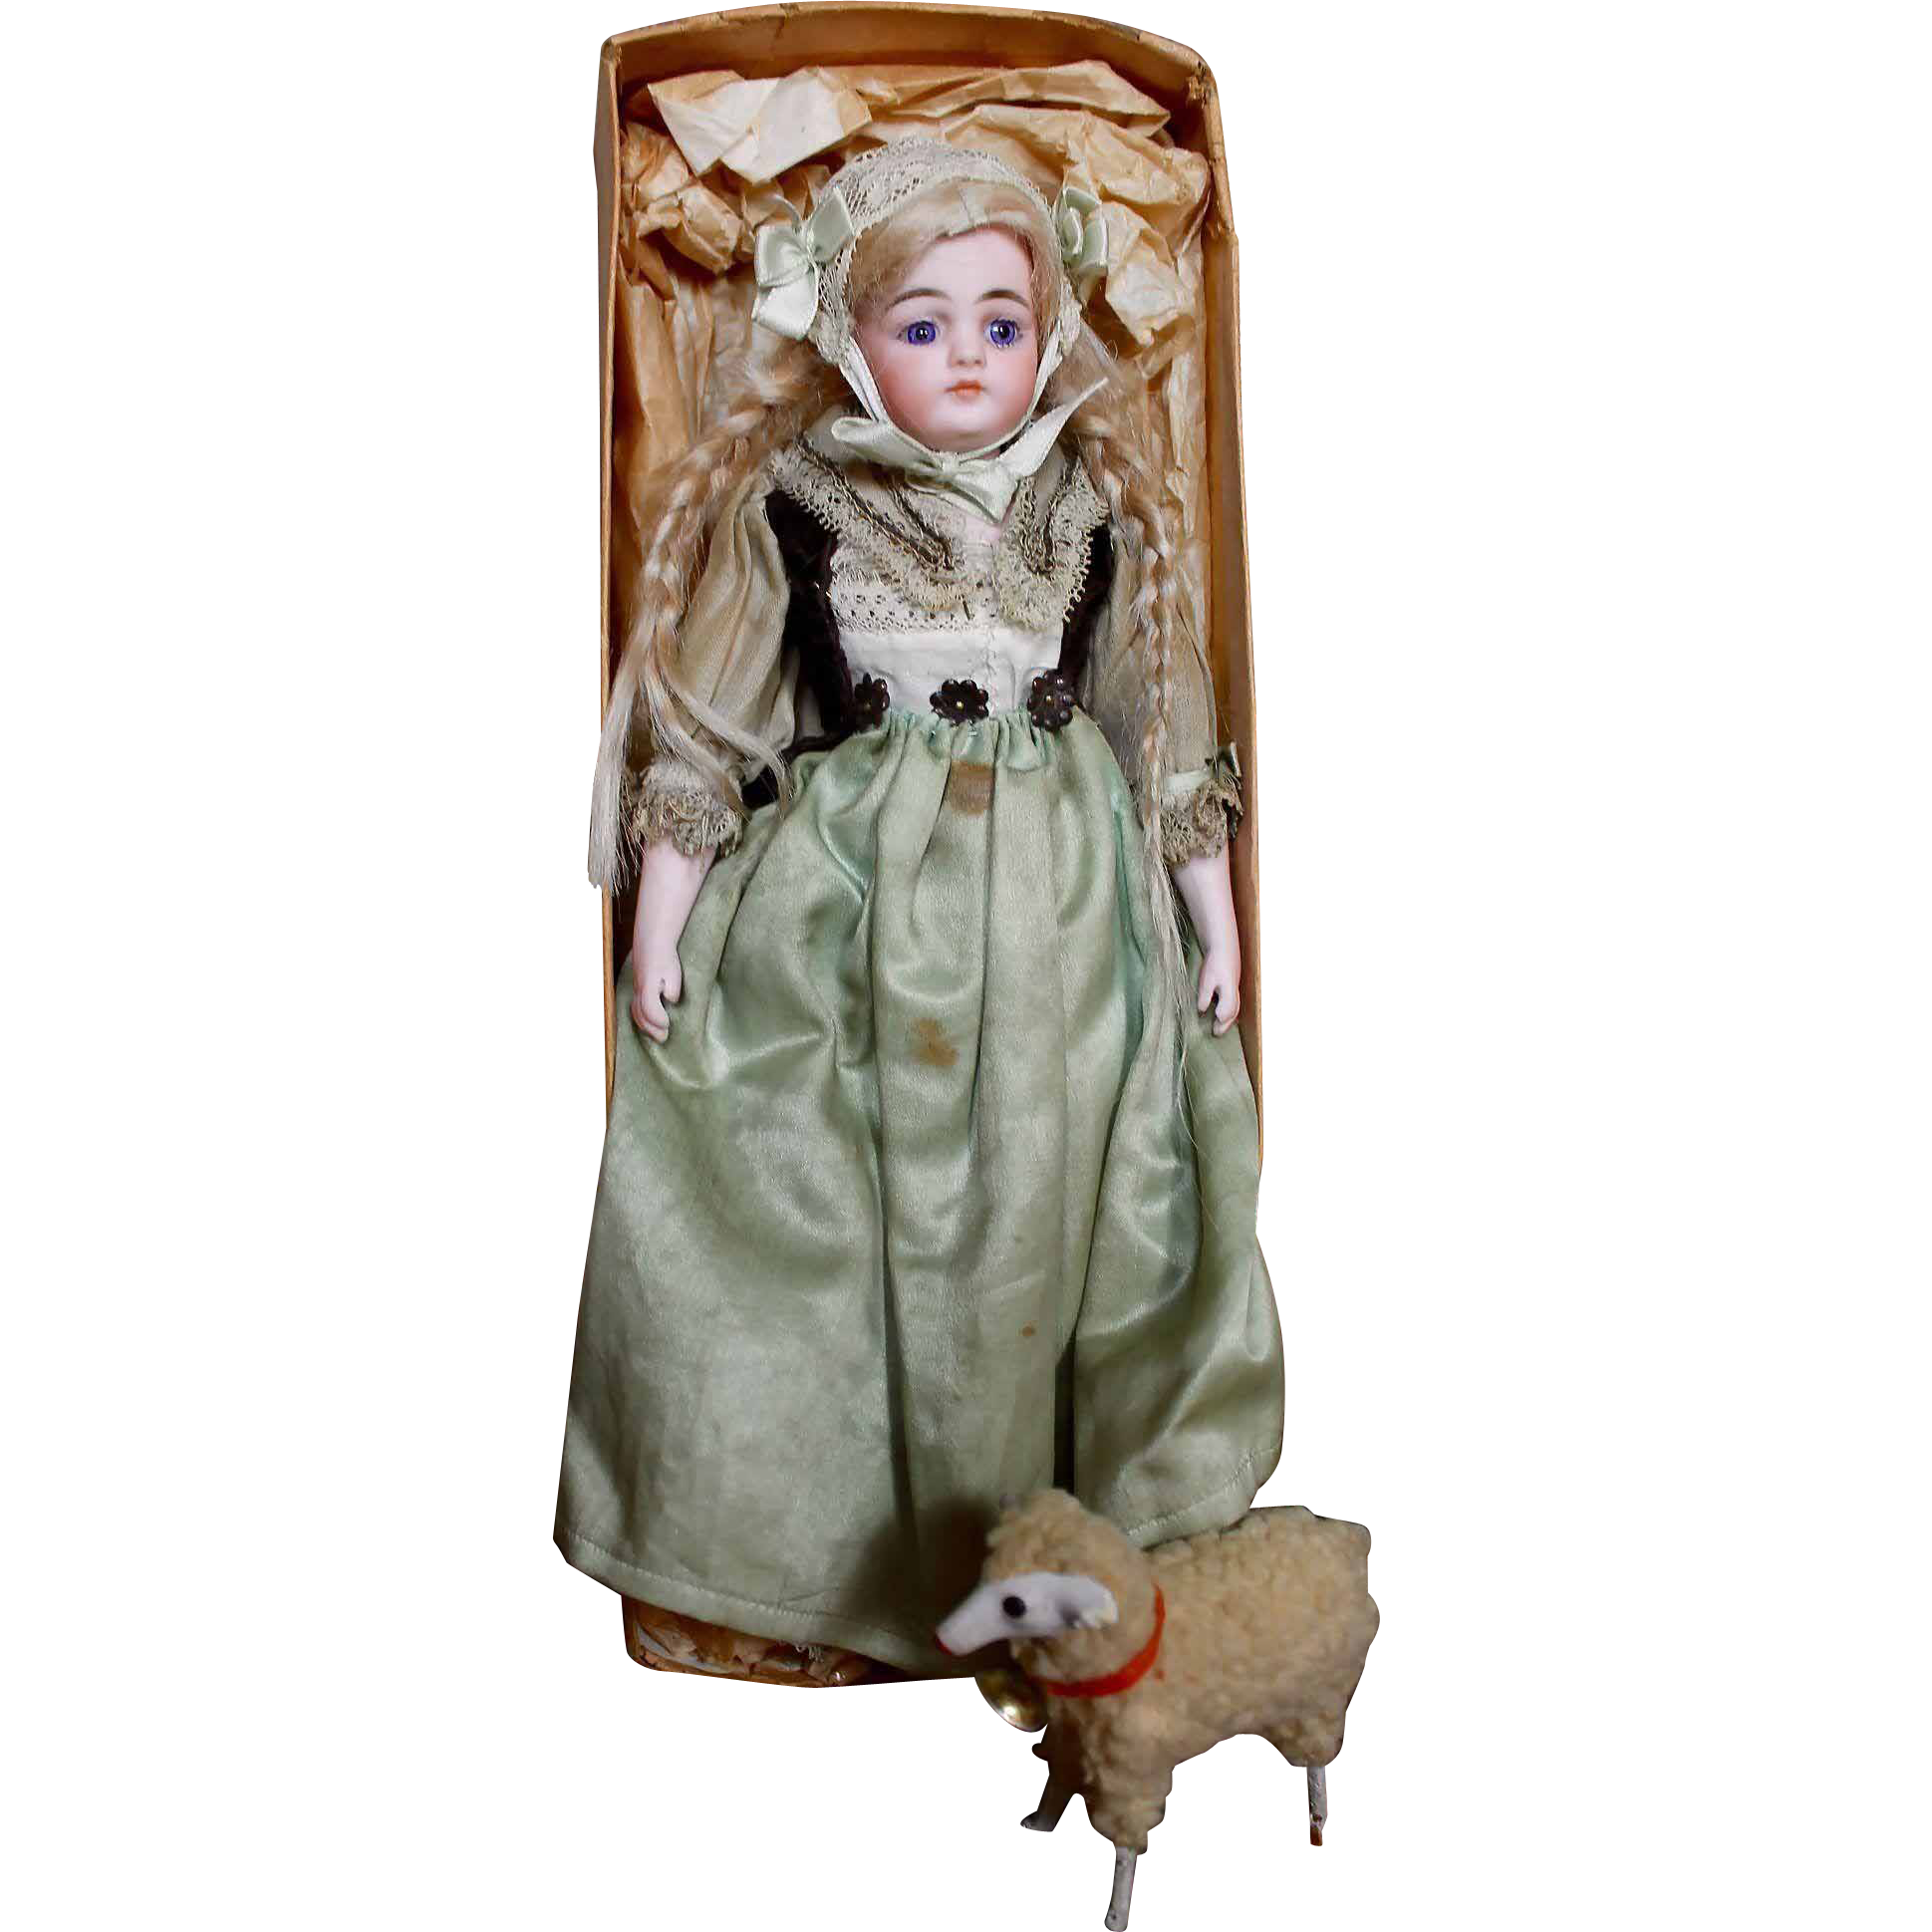 Precious 9 1/2 all original Simon Halbig 950 child in box with sheep.  What a darling face on this absolutely adorable petite child made by the German